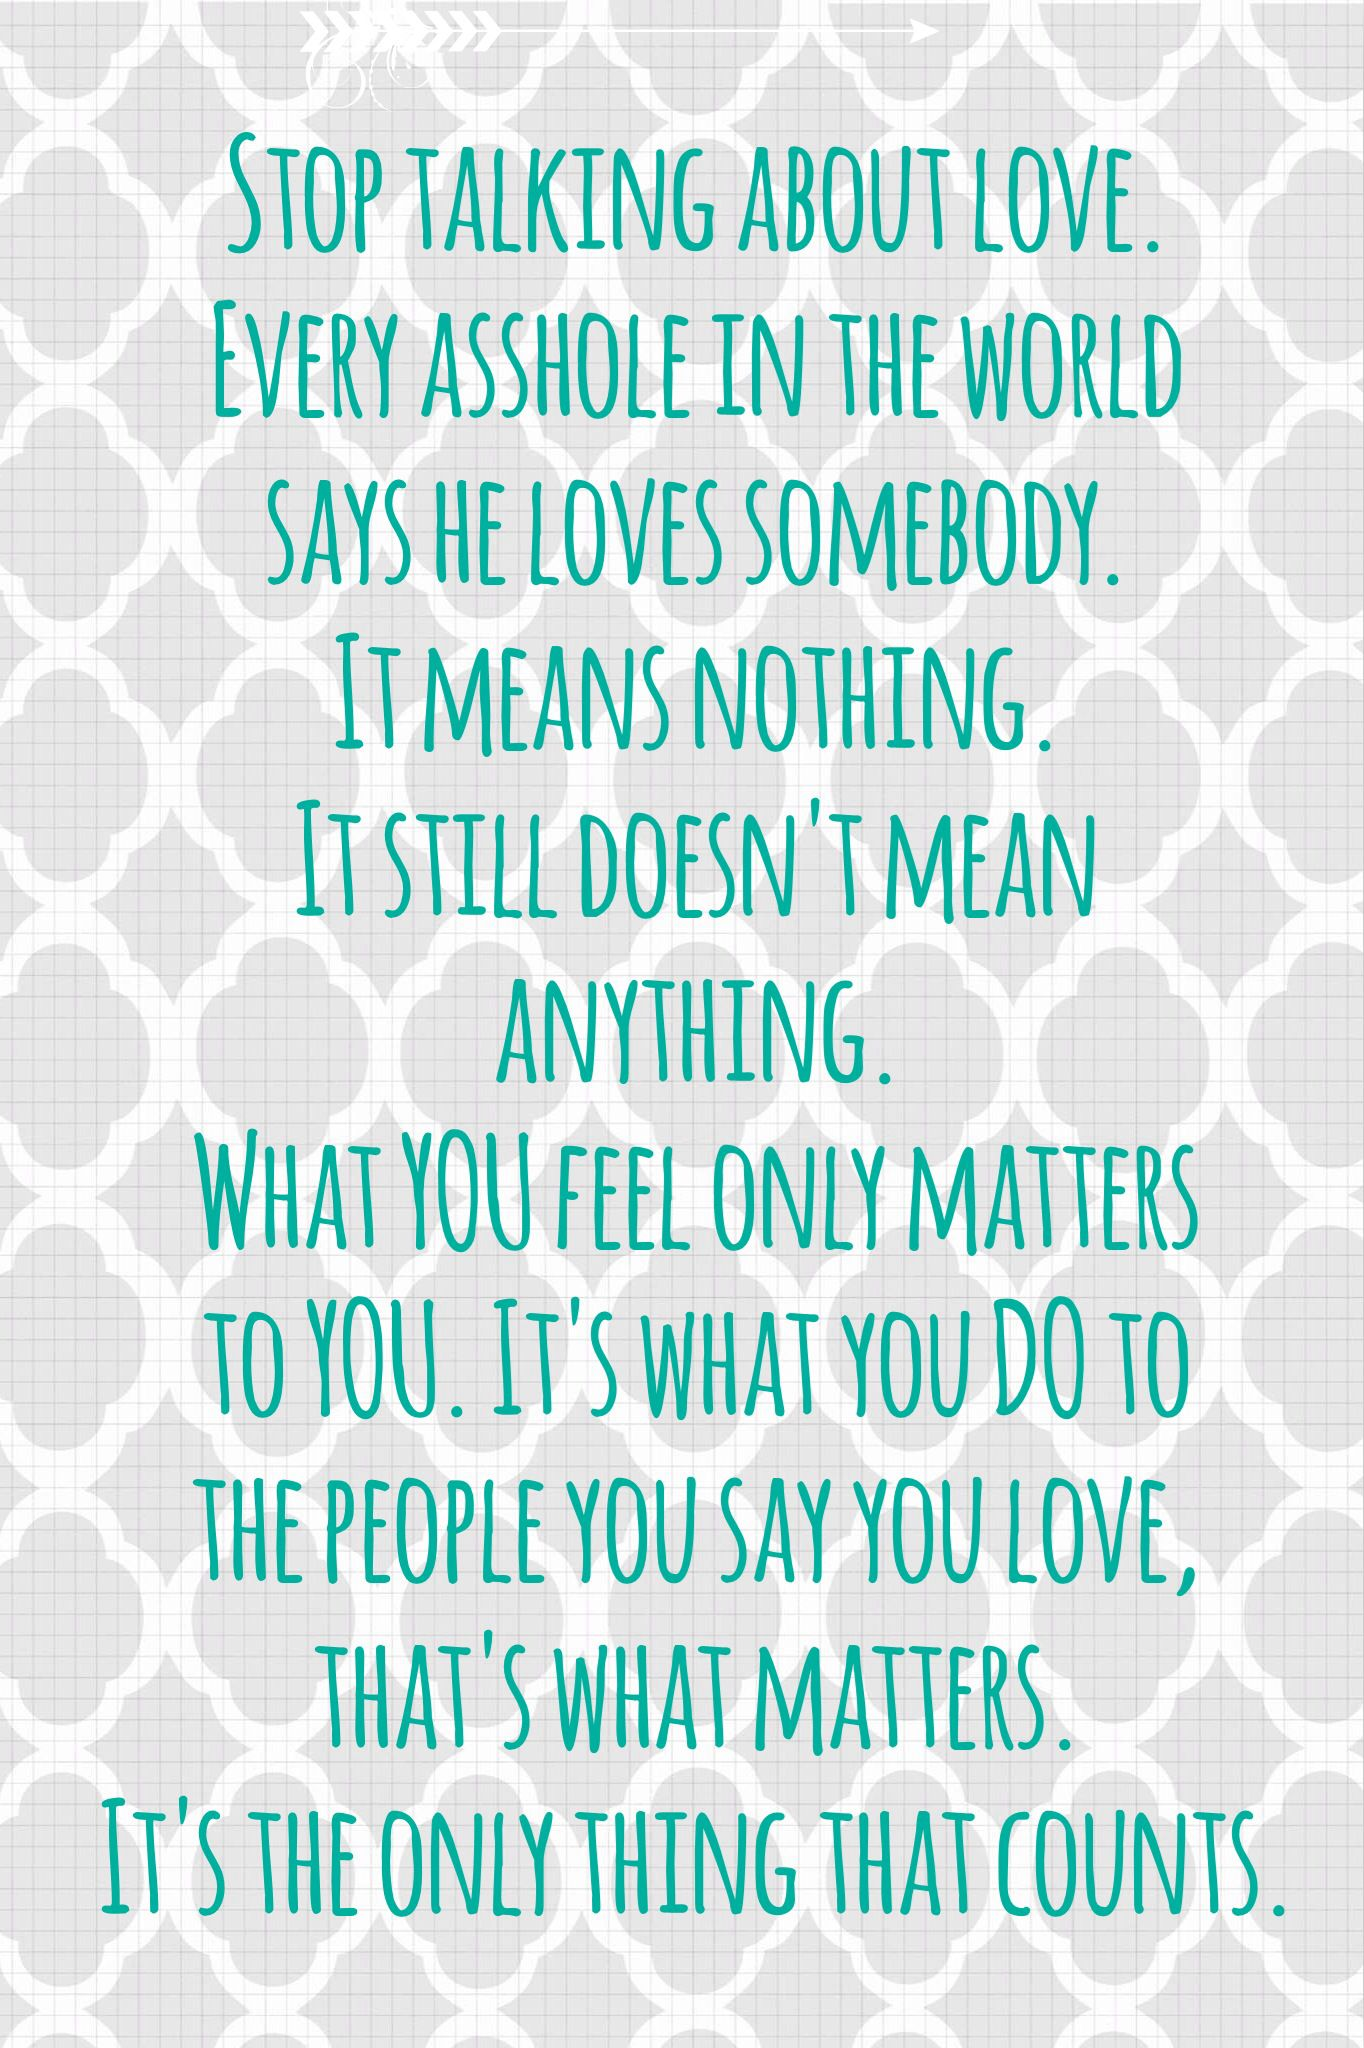 A great quote about love from the movie The Last Kiss